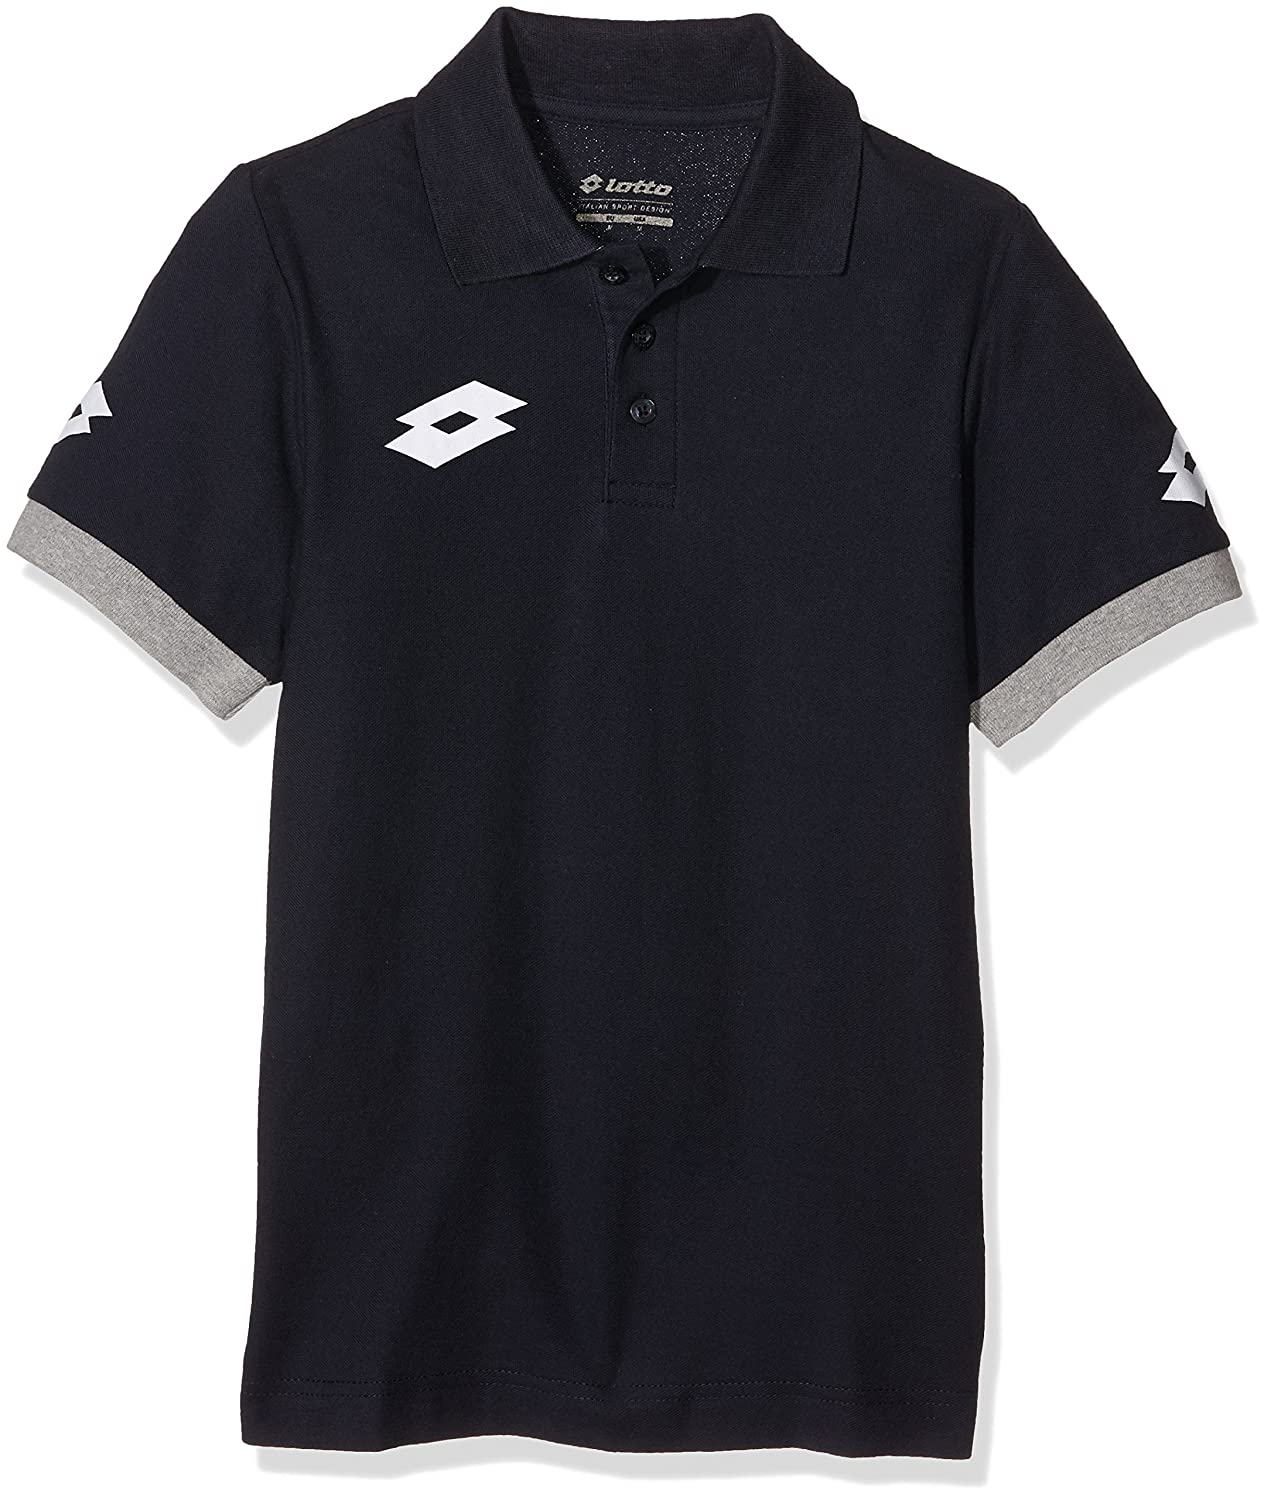 Lotto Boy's Stars Evo Polo T-Shirt